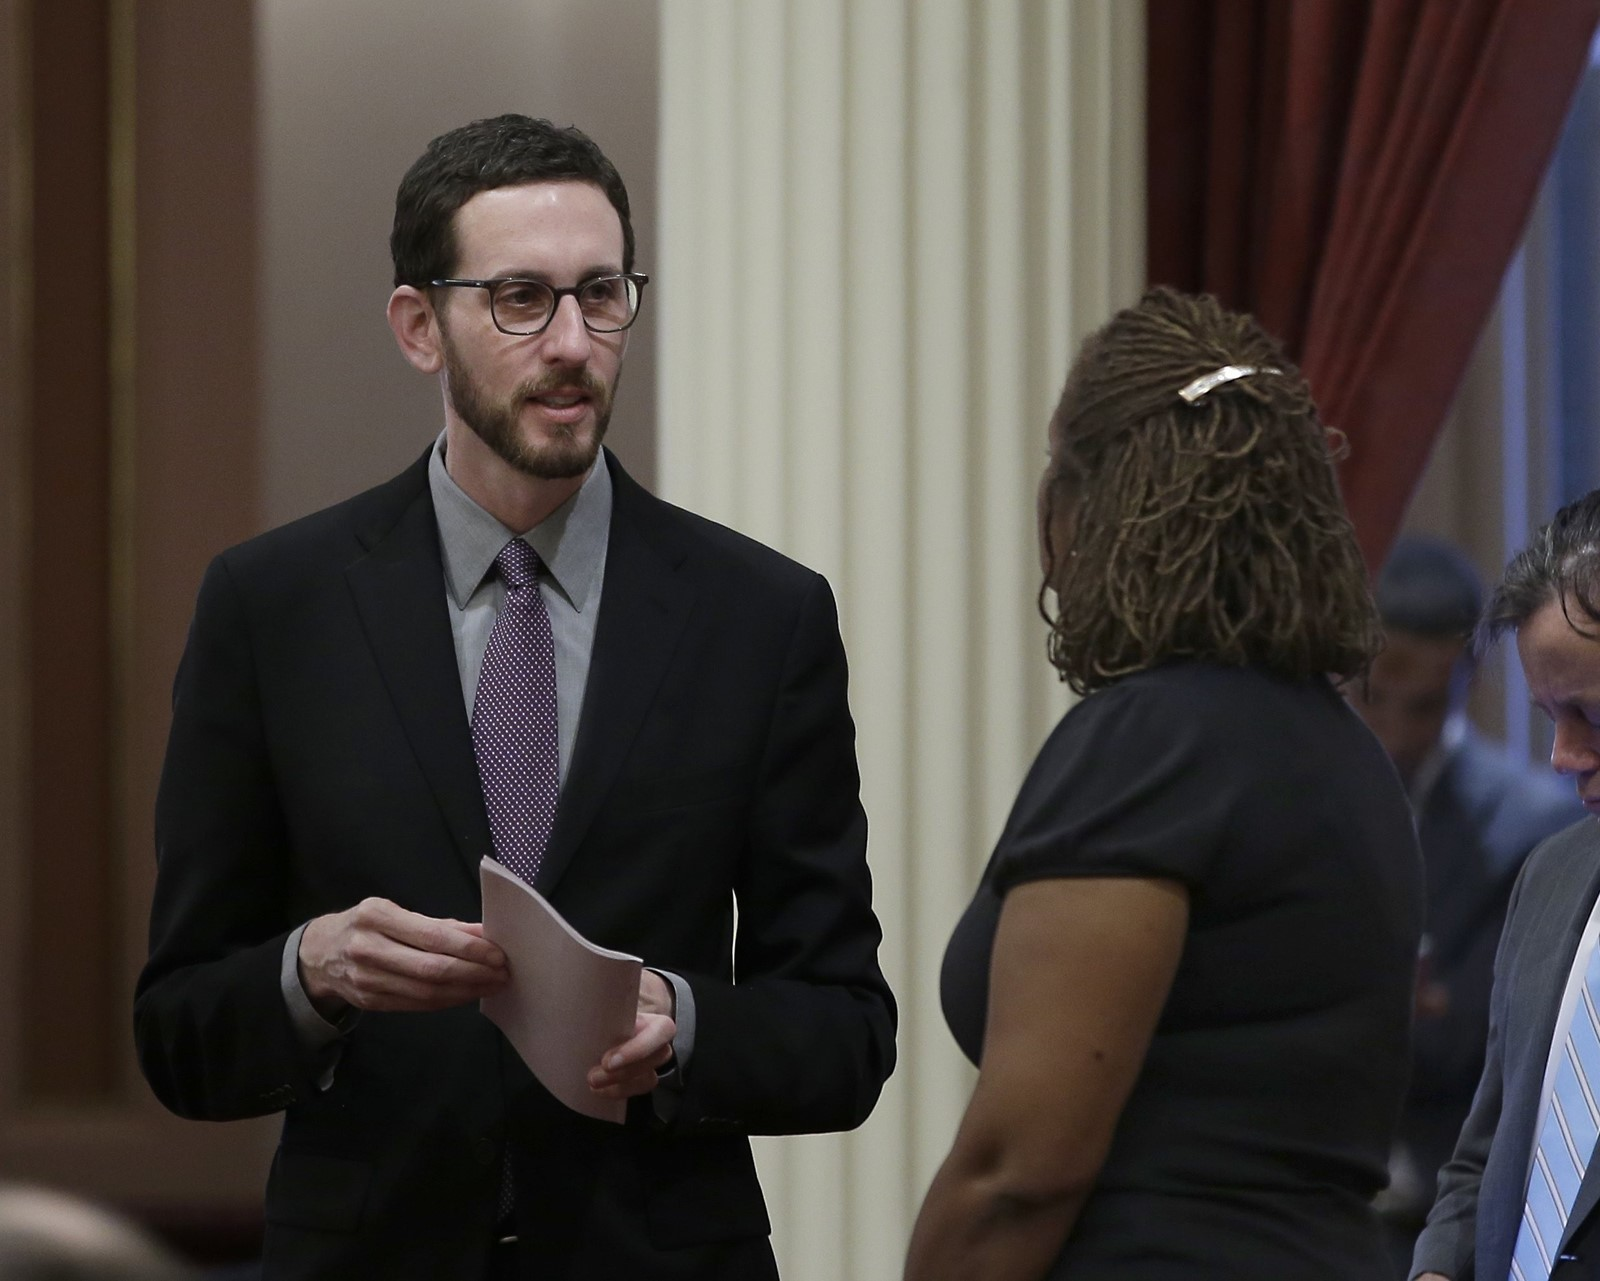 California just dramatically lowered the punishment for willfully exposing someone to HIV